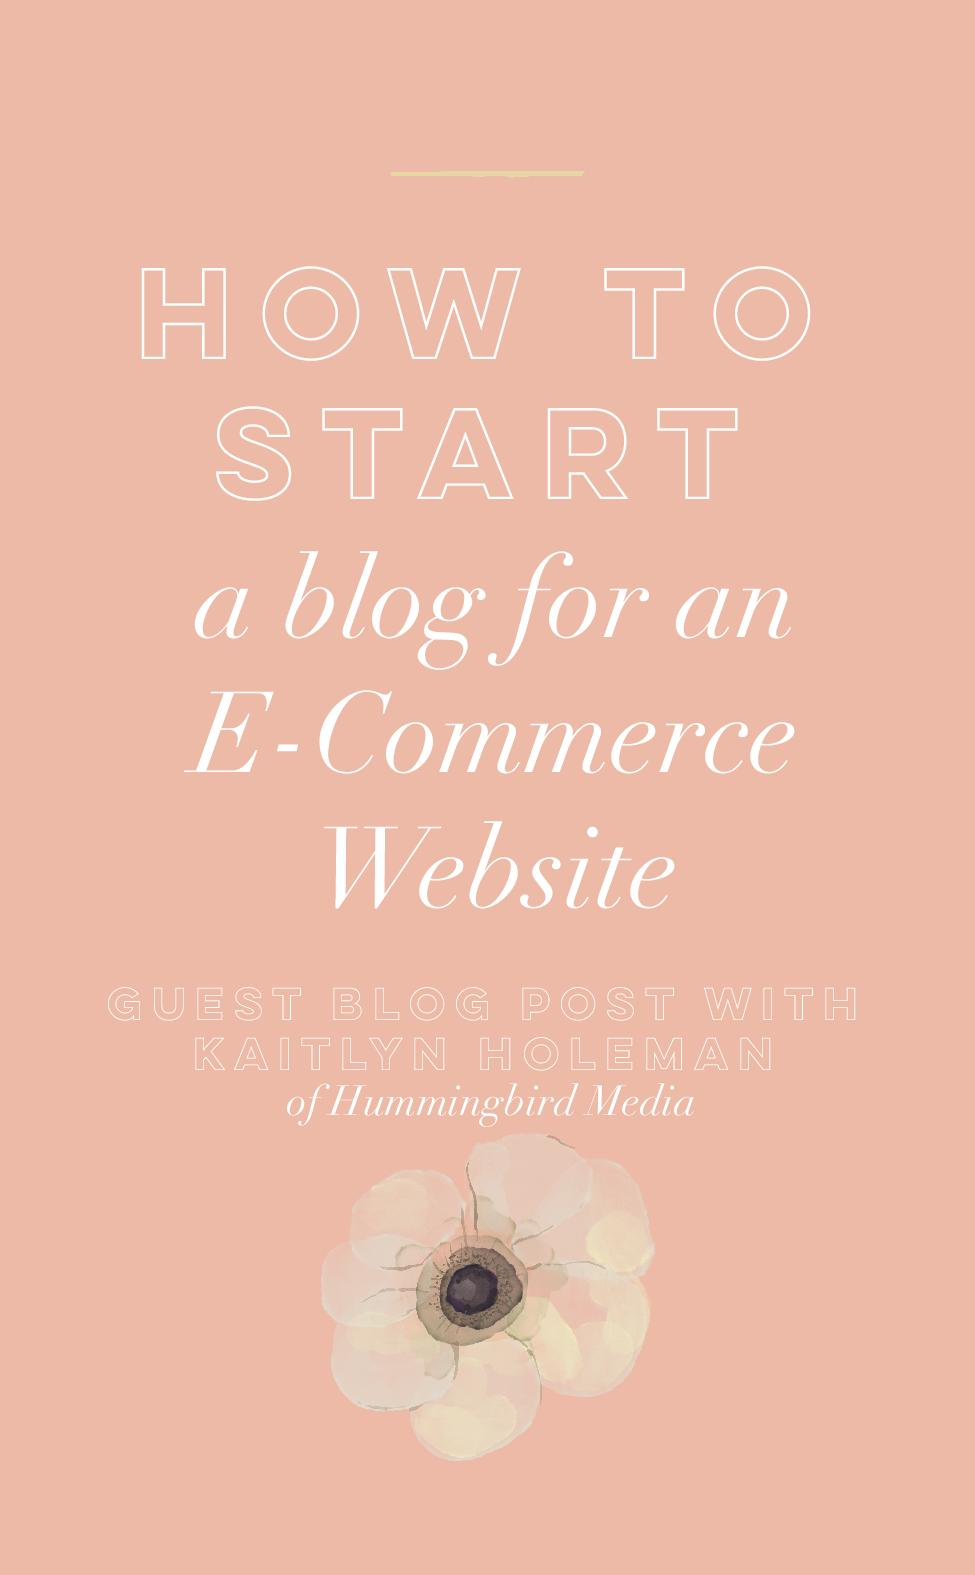 Today's post is a guest blog post written by  Kaitlyn Holeman of Hummingbird Media .